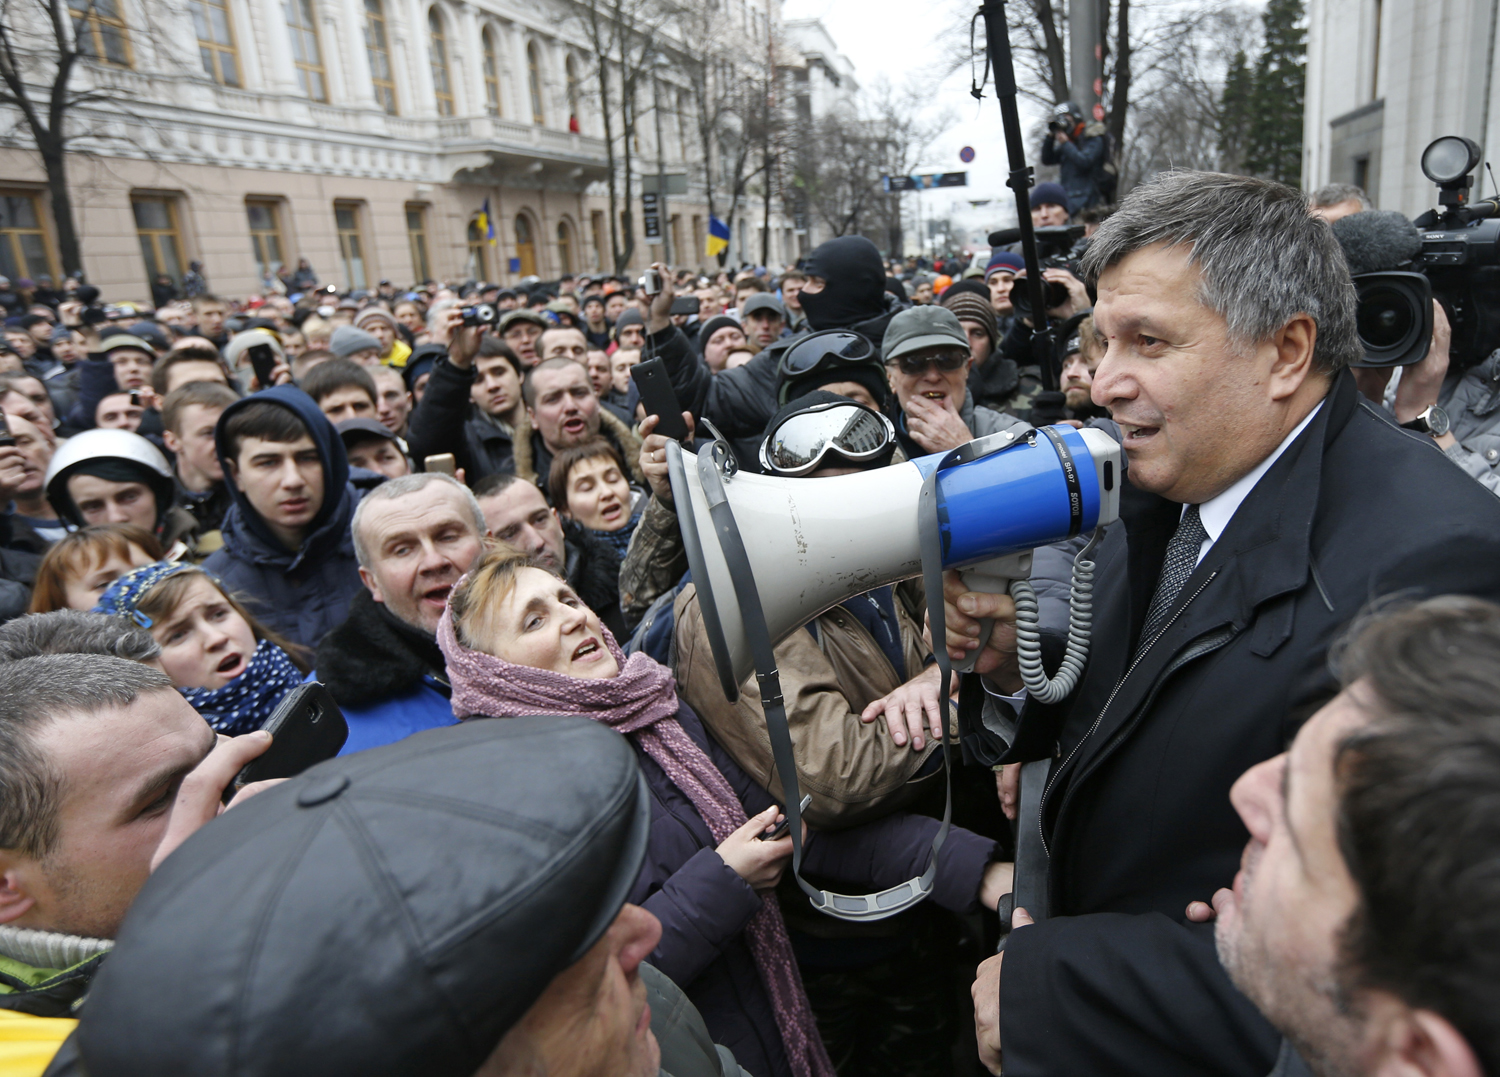 Newly elected Ukrainian interior minister Arsen Avakov (R) holds a loud-speaker as he addresses anti-government protesters outside the Ukrainian parliament building in Kiev February 22, 2014.